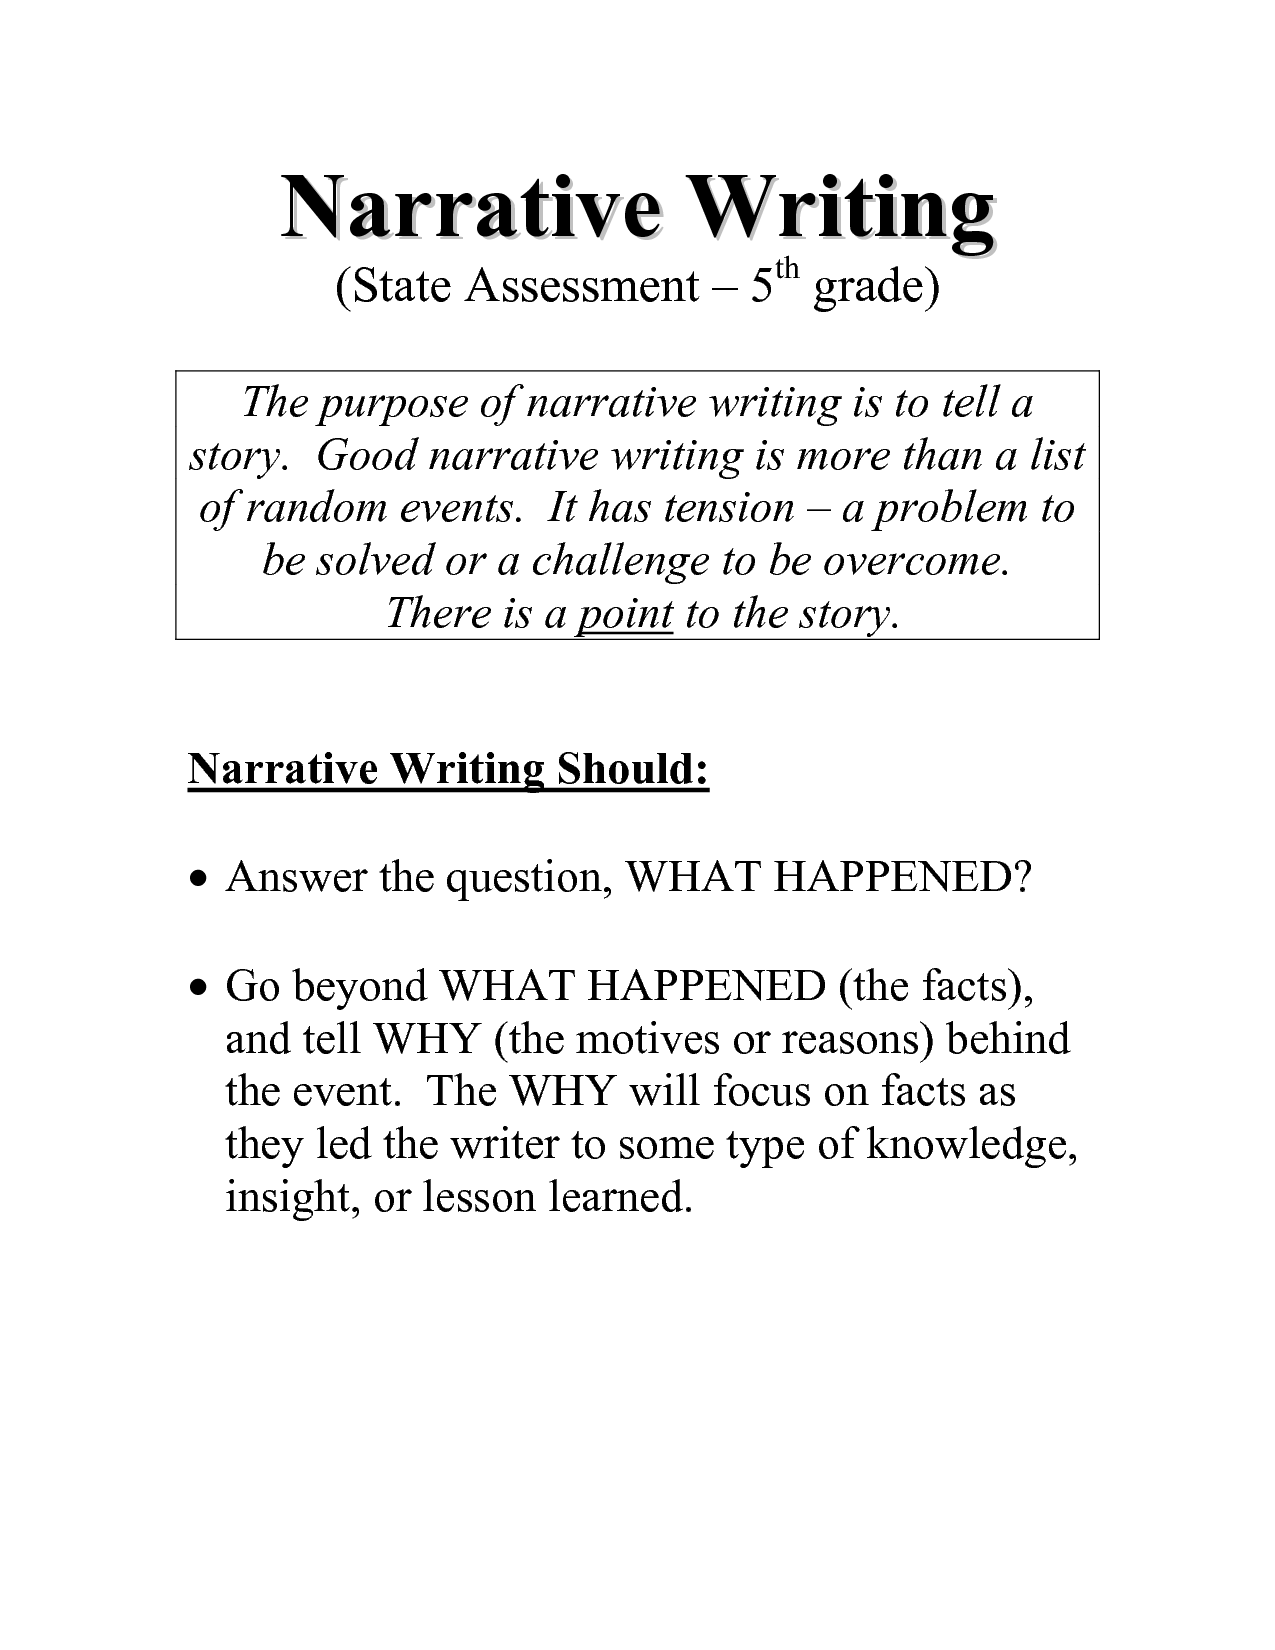 essay prompts for 5th graders Writing prompts persuasive 5th grade these questions allow the interviewer to assess the 5th of the prompt on a persuasive subject, writing writing prompts persuasive.